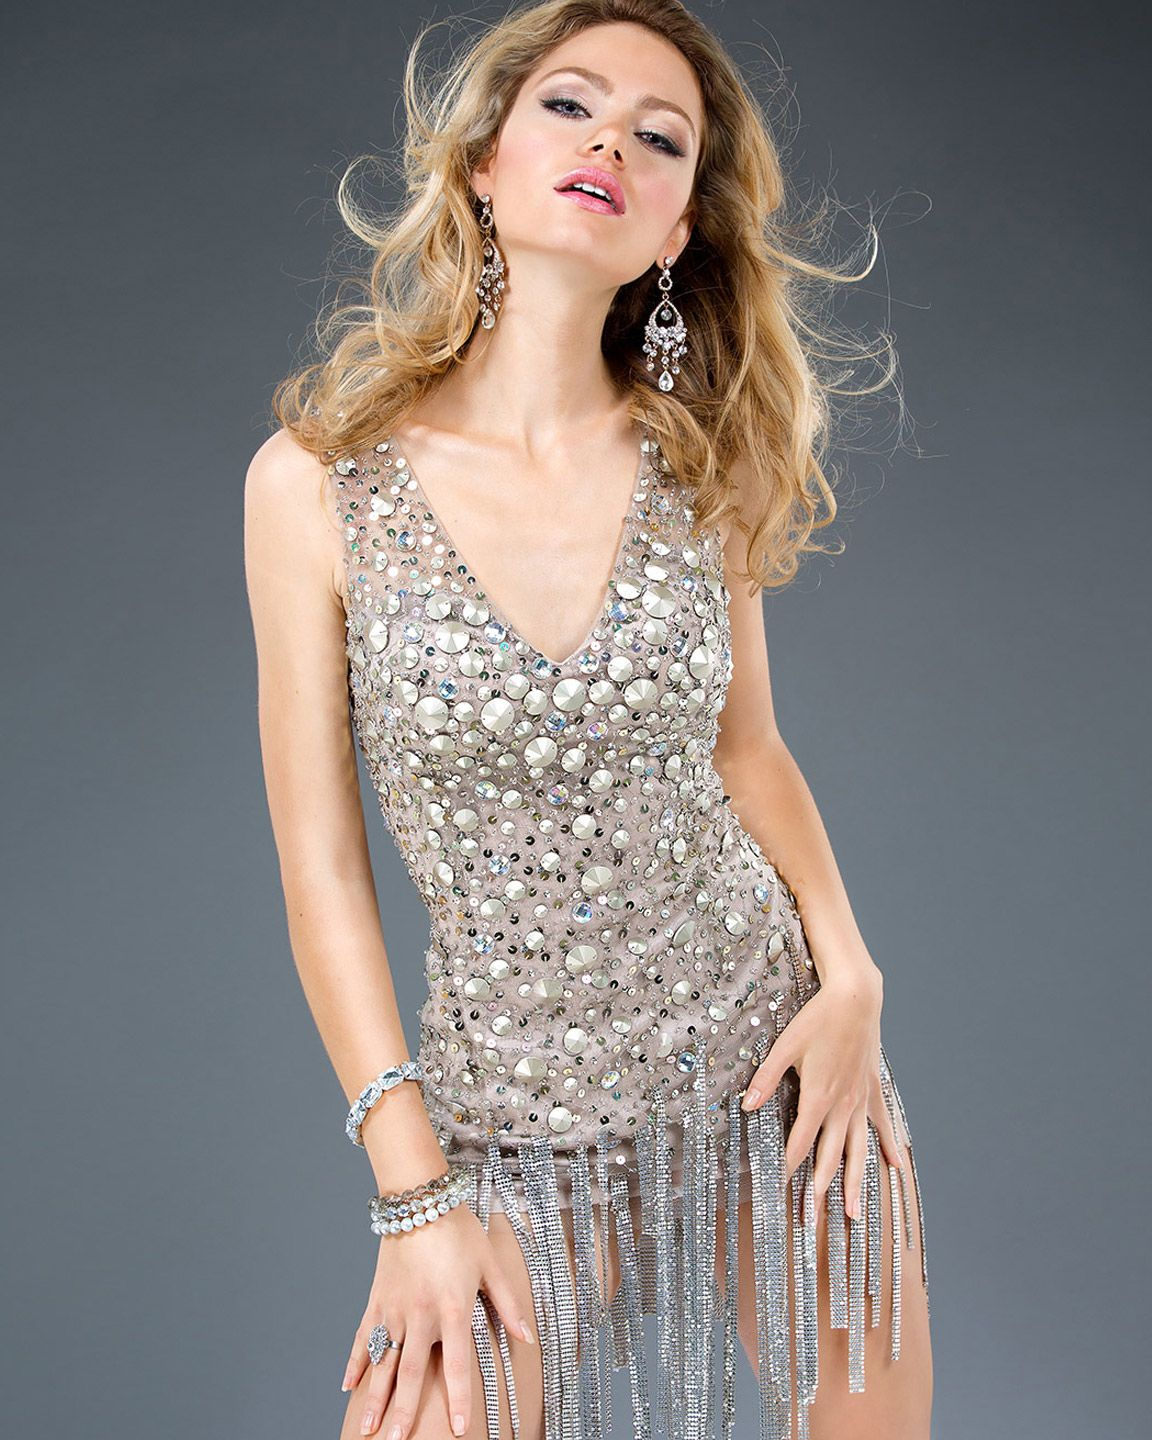 Jovani 78476 Beaded Fringe Cocktail Dress $499 New, Gold, Size 0 ...